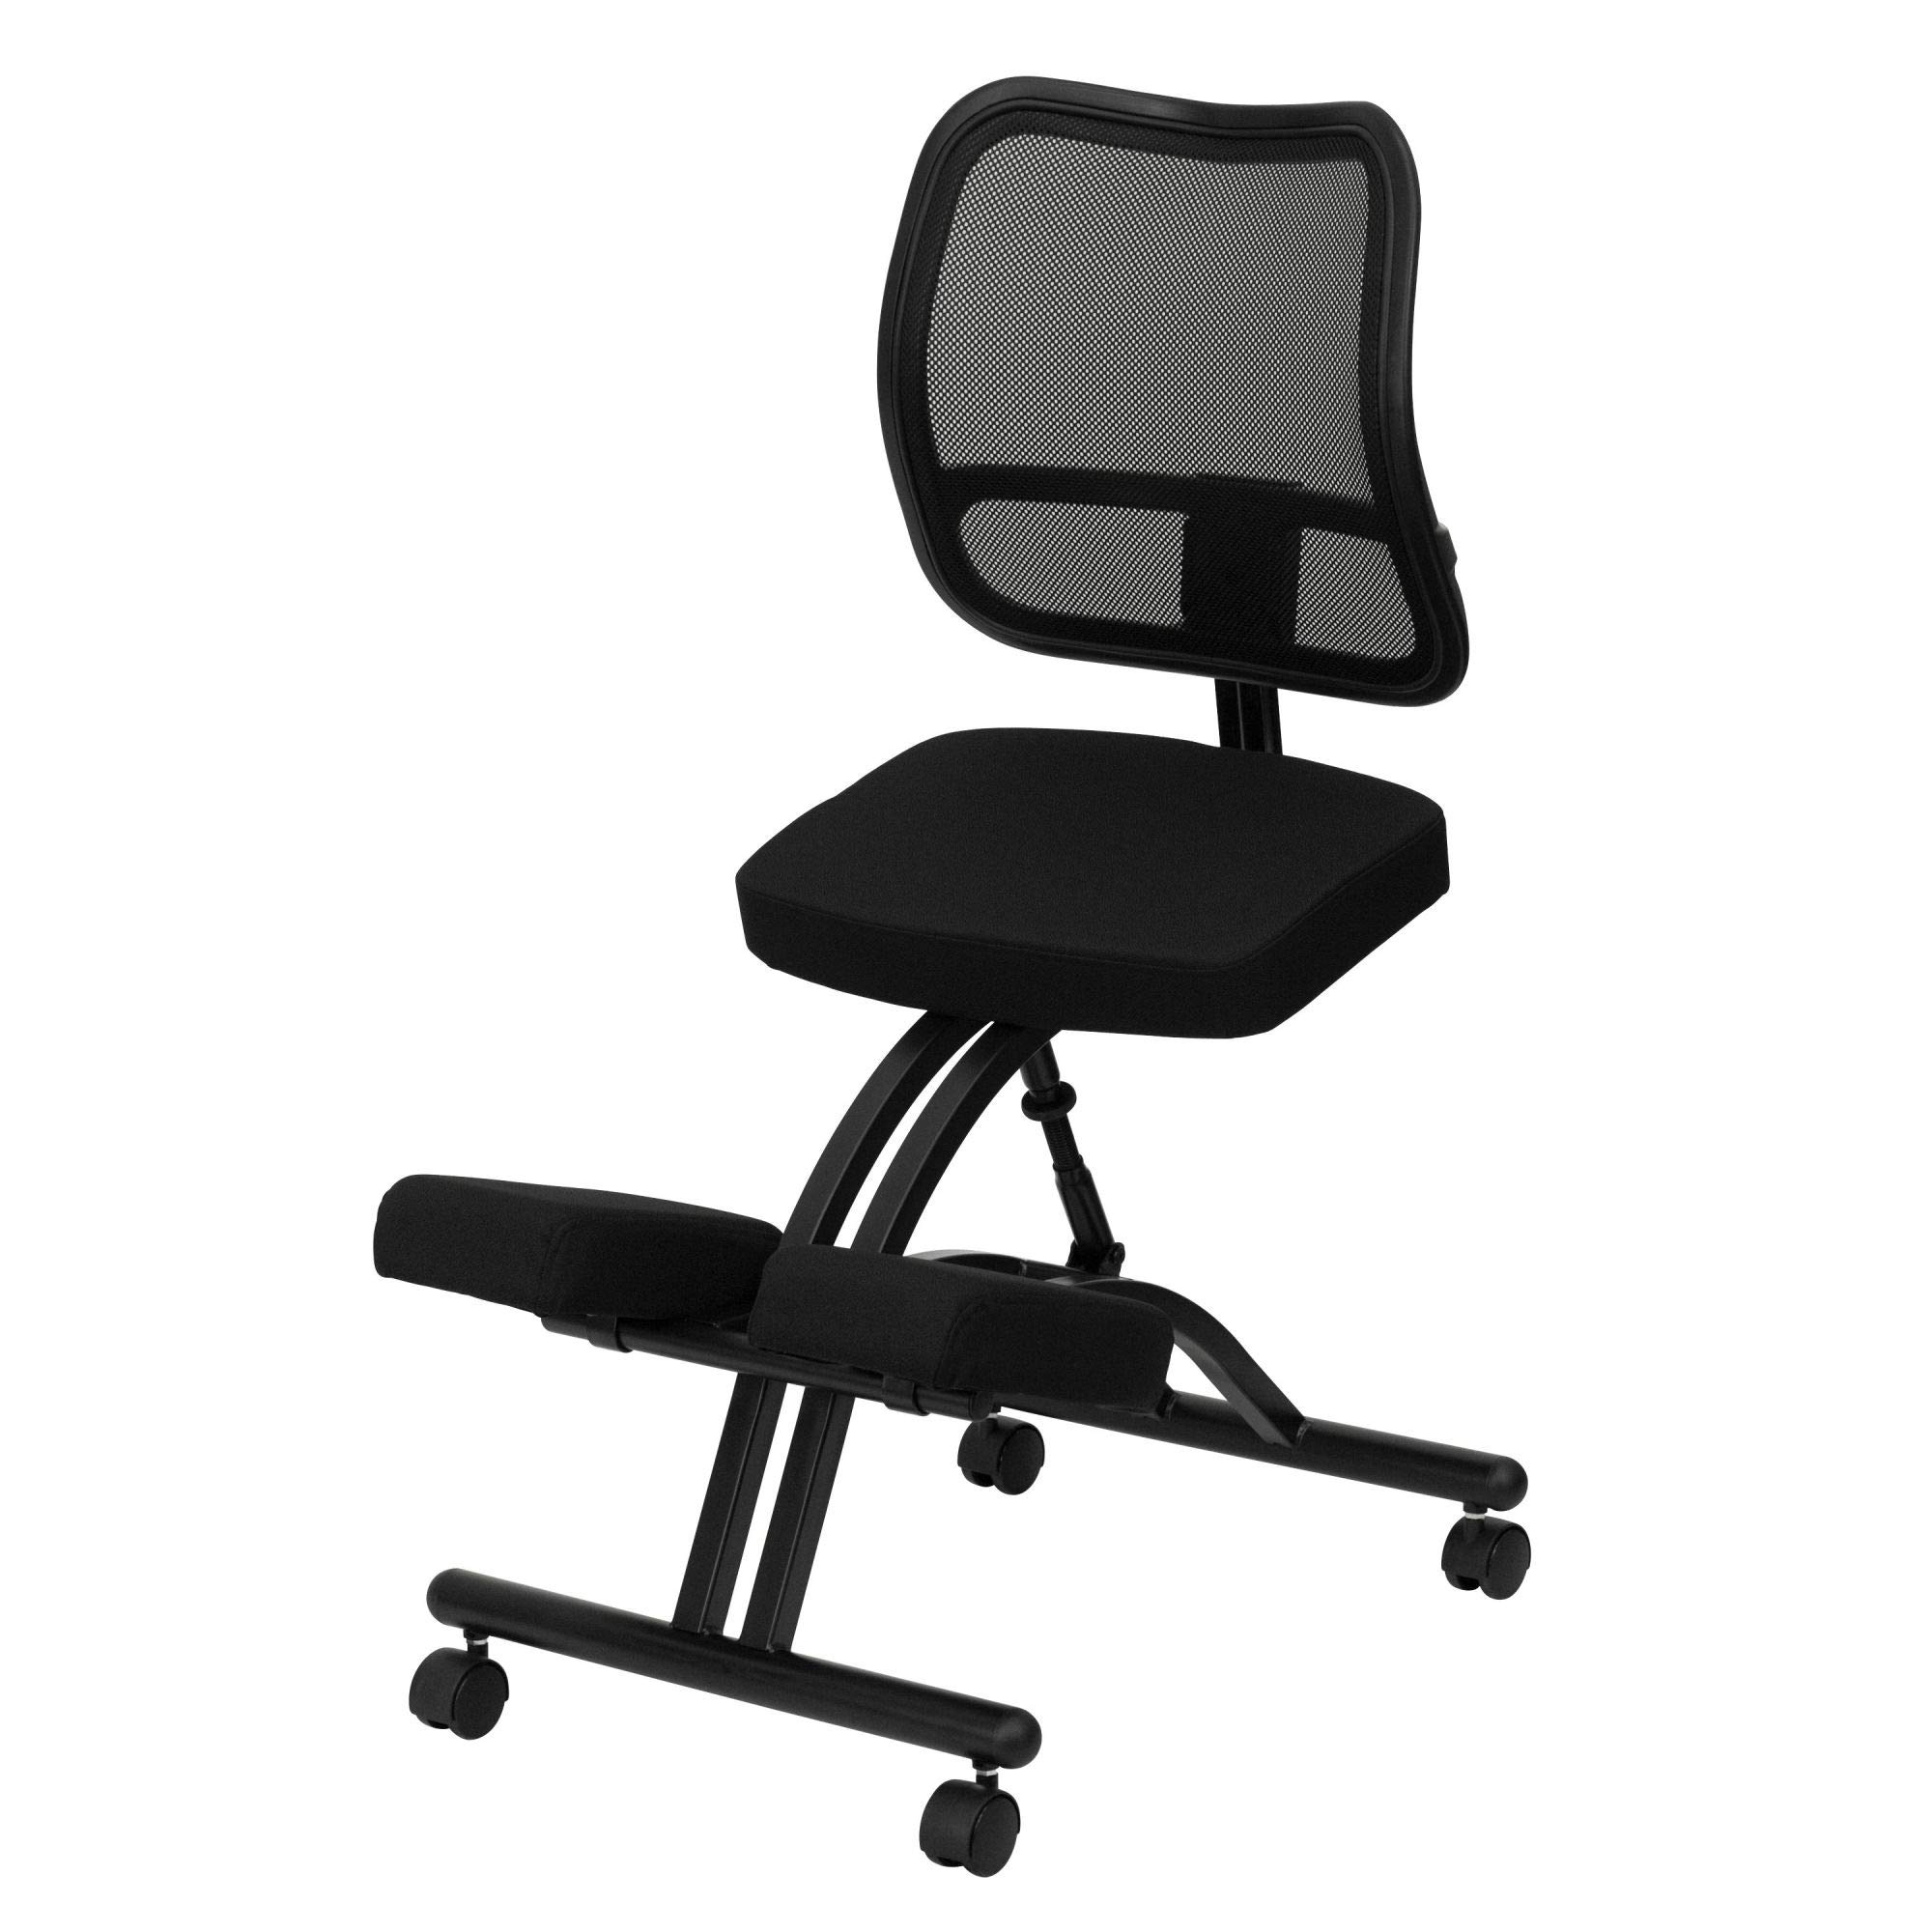 Delacora WL-3520-GG 20 Inch Wide Fabric Kneeling Chair with Mesh Back by Delacora